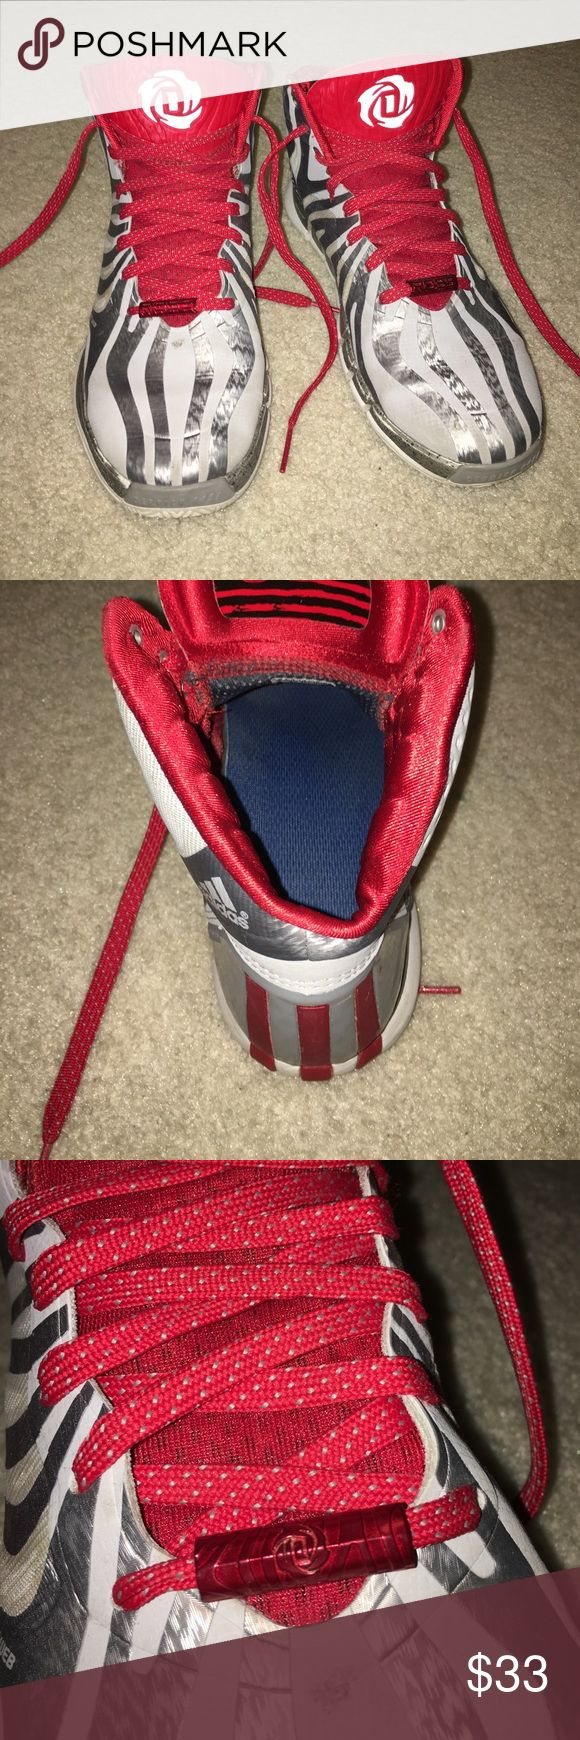 Derrick Rose Men's Basketball Shoe In amazing condition, worn for one season of basketball. Added insoles for comfort. Adidas Shoes Athletic Shoes